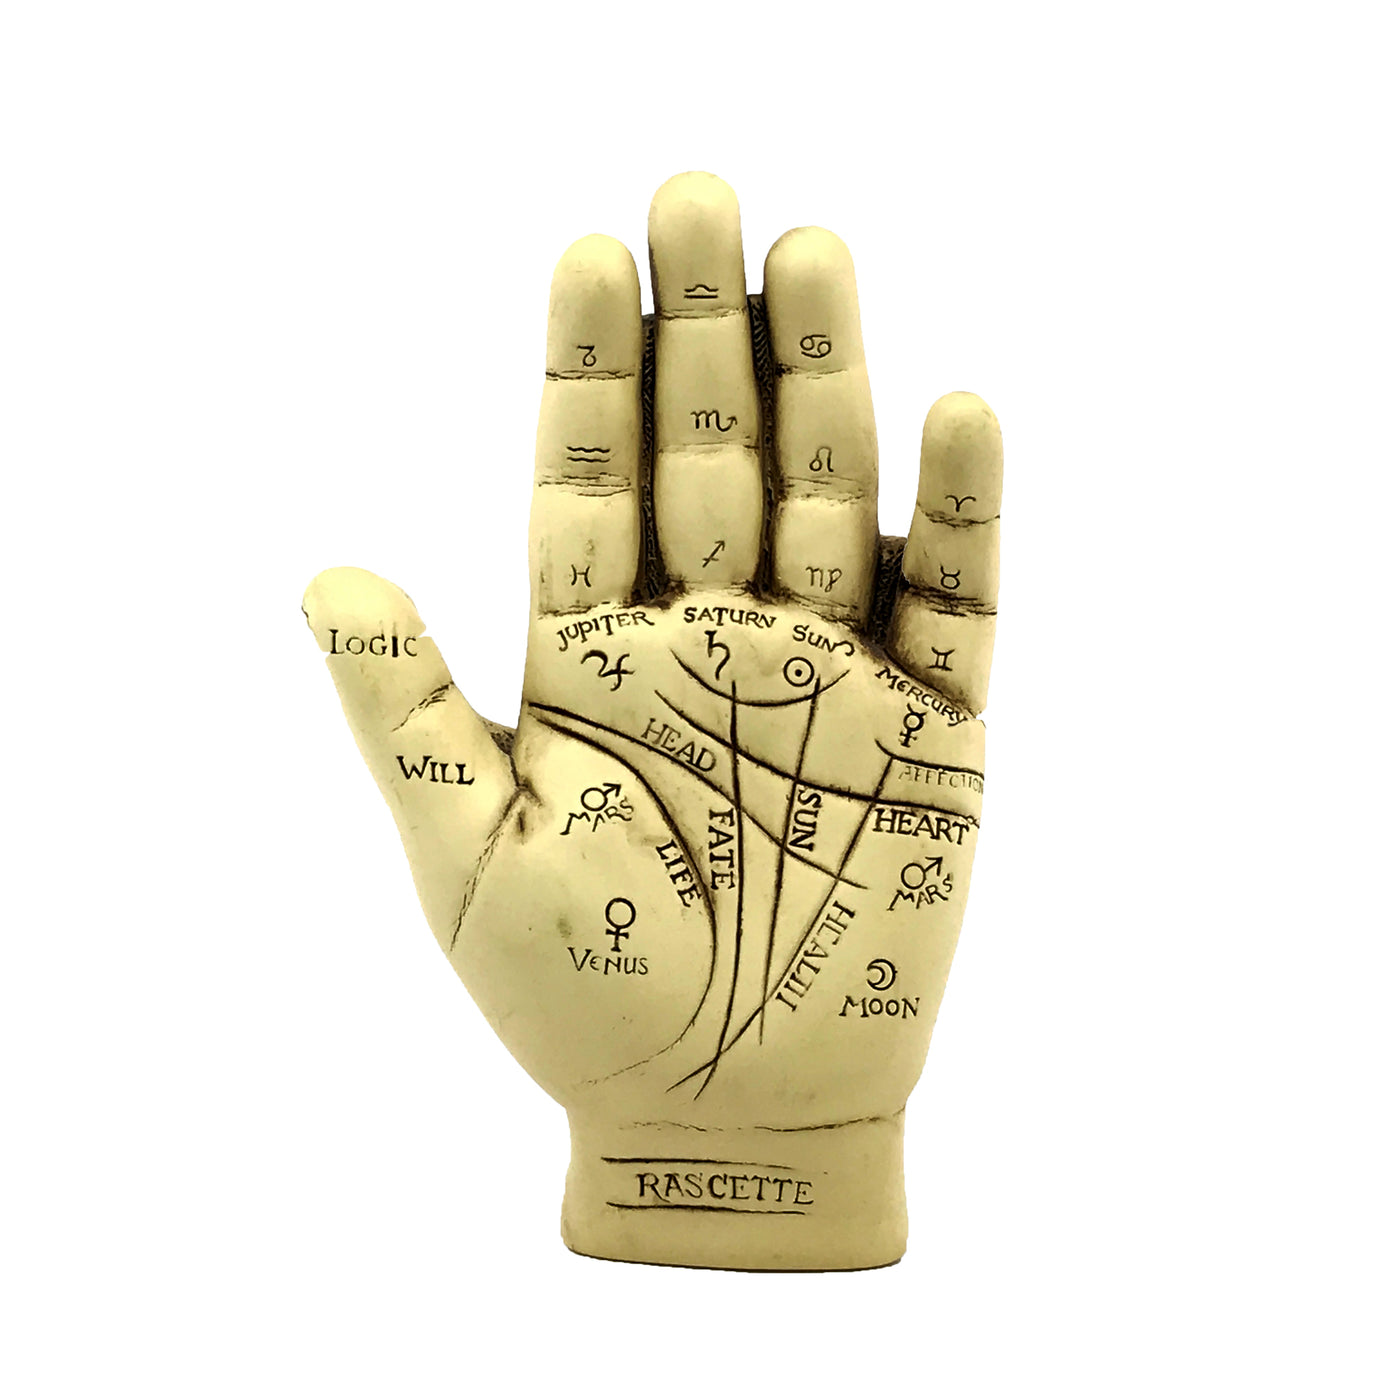 Palmistry Hand Statue Kit With Info Booklet Sabbat Box Diagram Also Palm Reading Chart And Meaning On Statuary